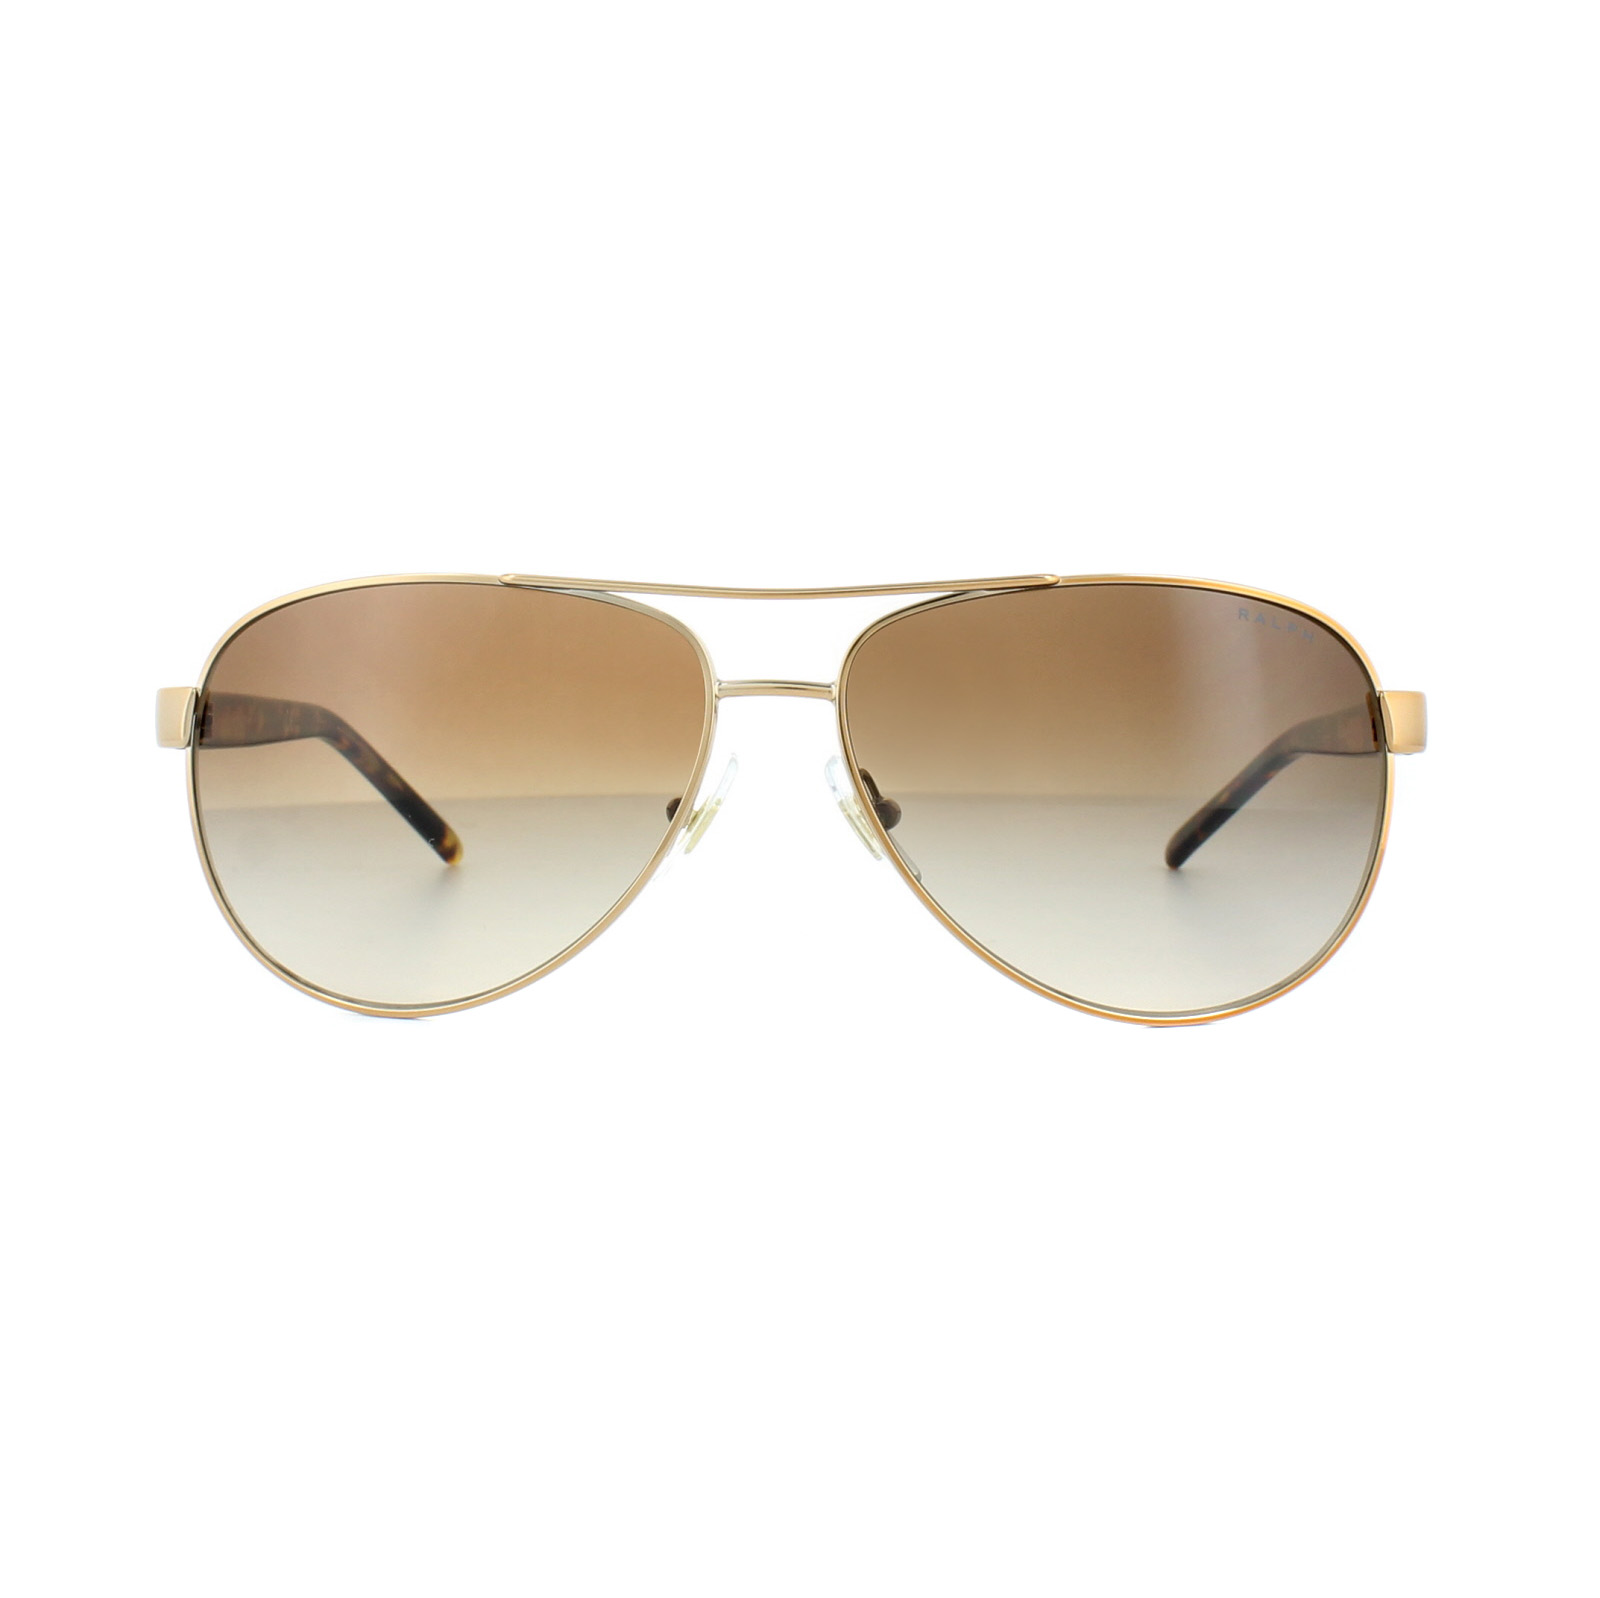 8c6455bd9370 Sentinel Ralph by Ralph Lauren Sunglasses 4004 104 13 Copper Havana Brown  Gradient